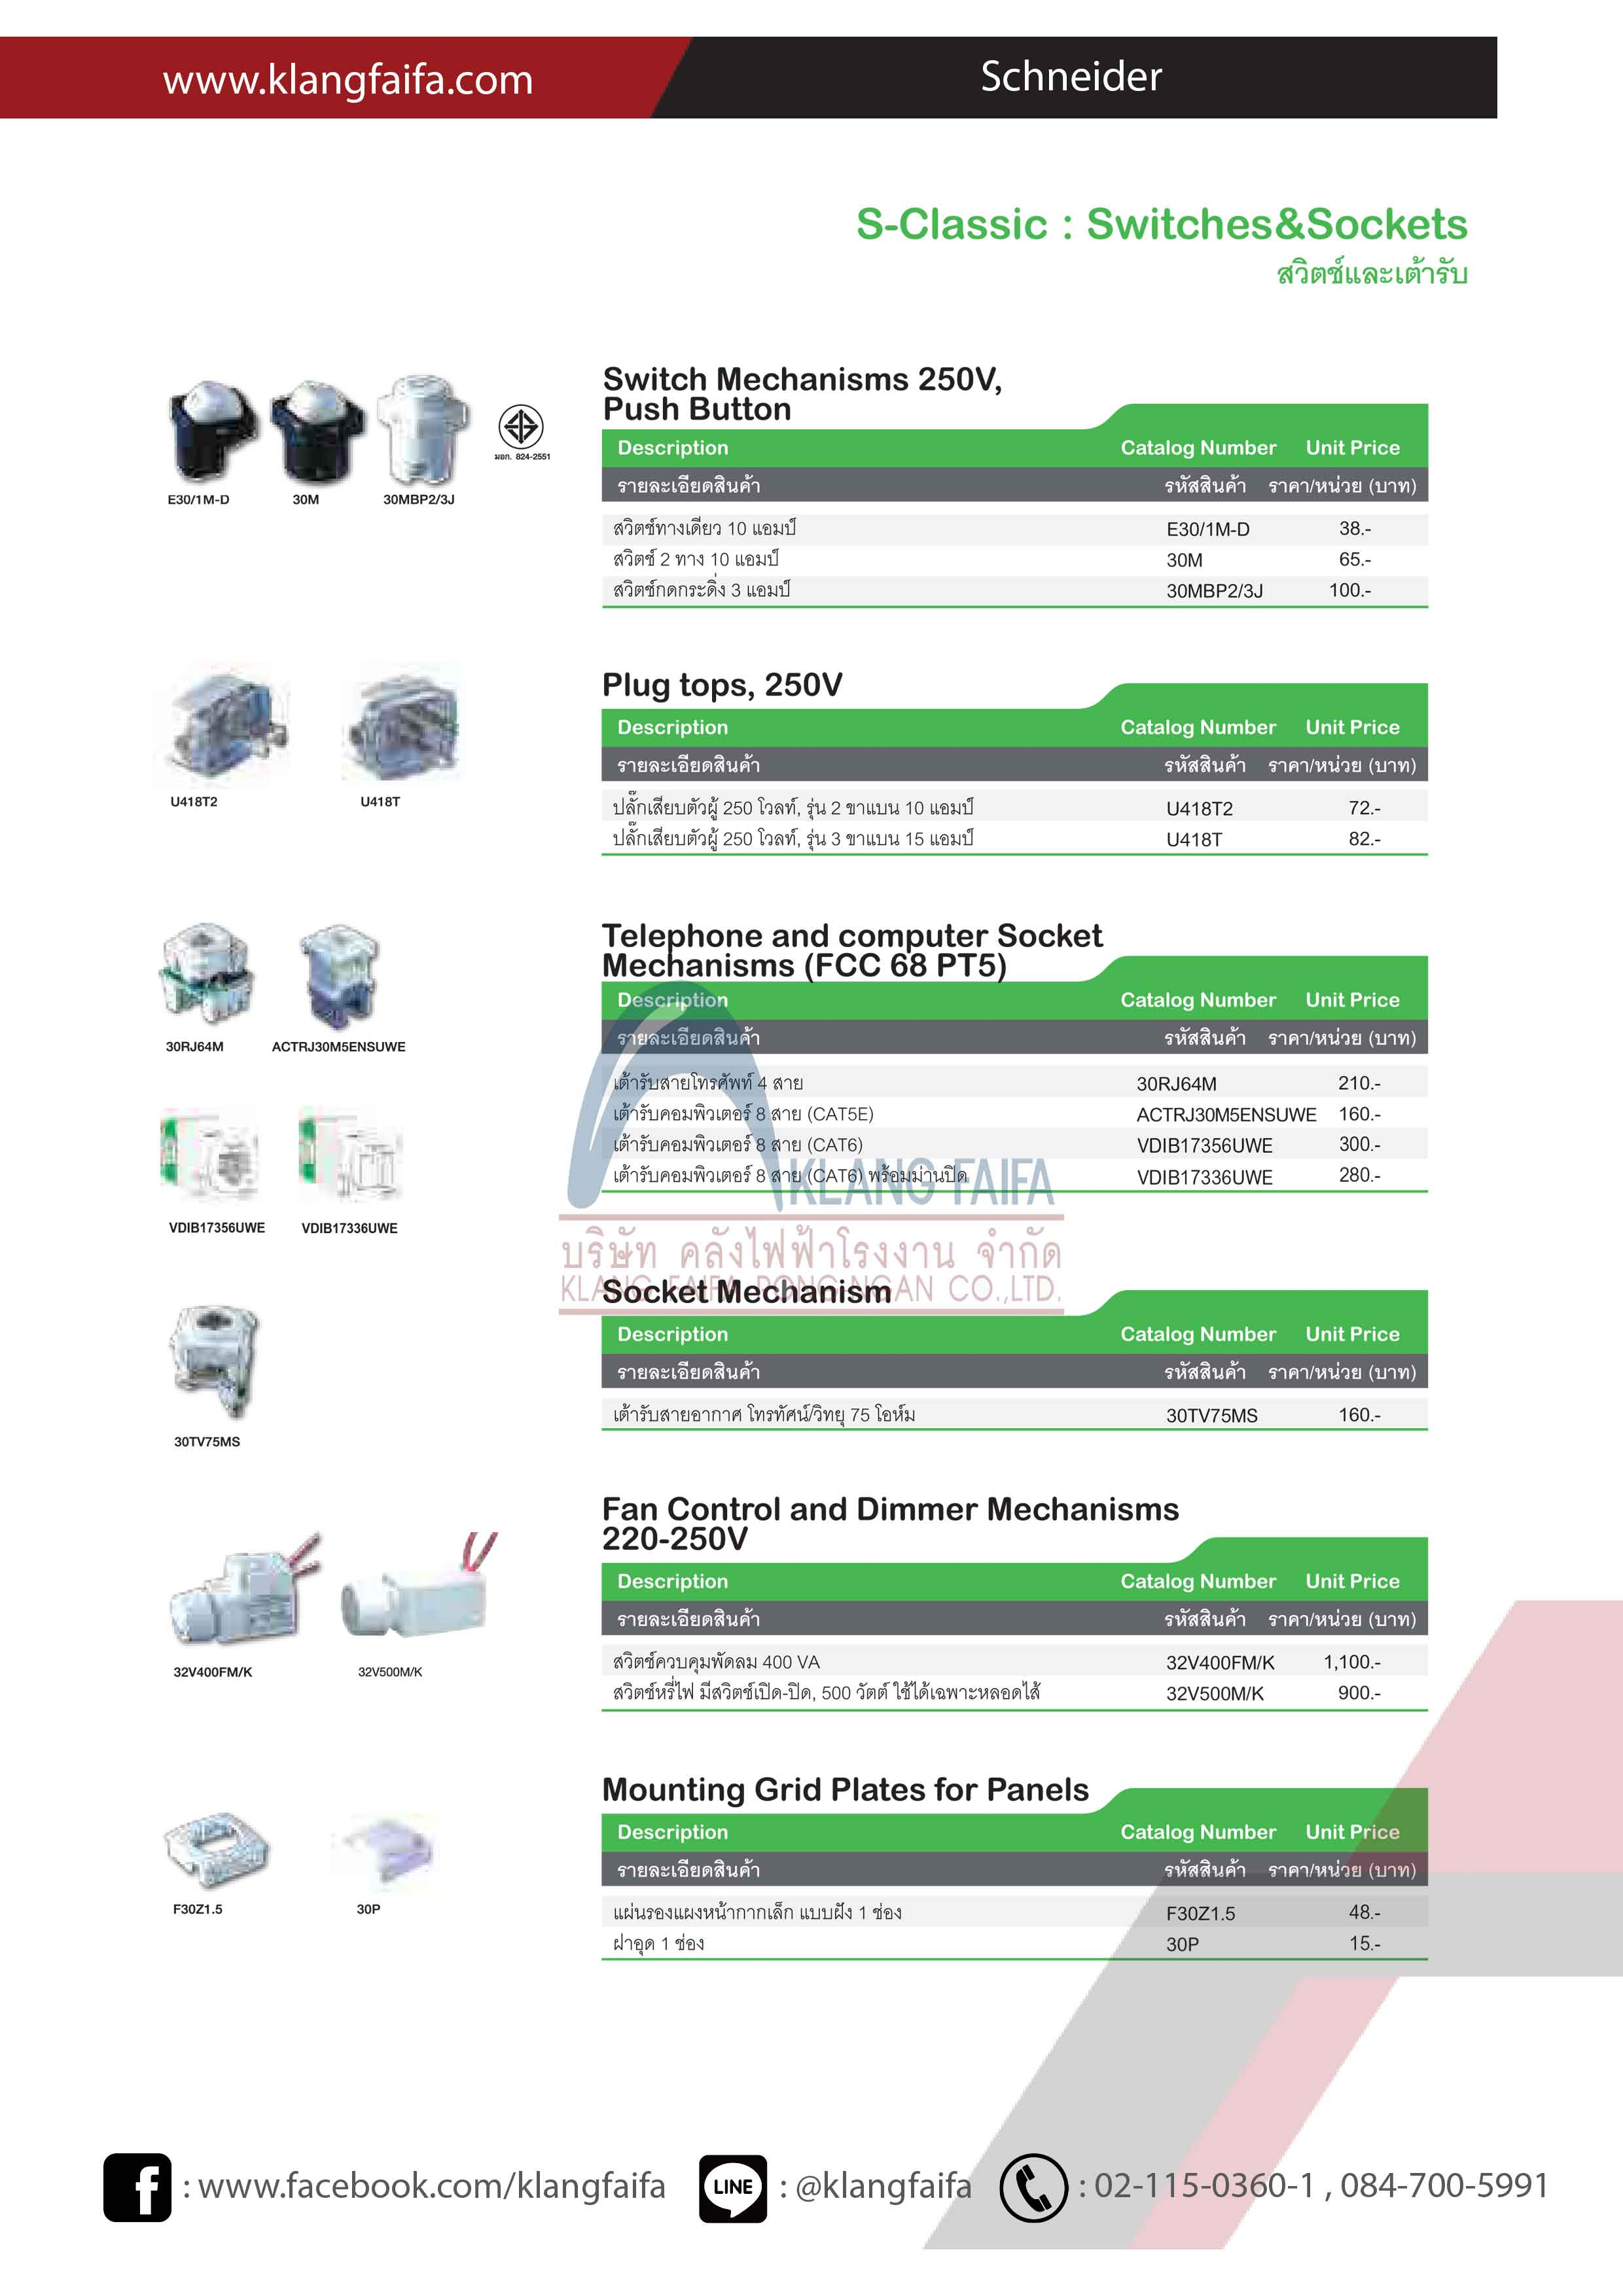 S-Classic, Switches, Sockets, Schneider, ComputerSocket, TelephoneSocket,TV_Socket, Signallinglamp, Dimmer, หน้ากากเต้ารับ, Flush_Plate, FloorSocket, ฝาครอบกันน้ำ, easyclip, Catalog_Schneider_2019